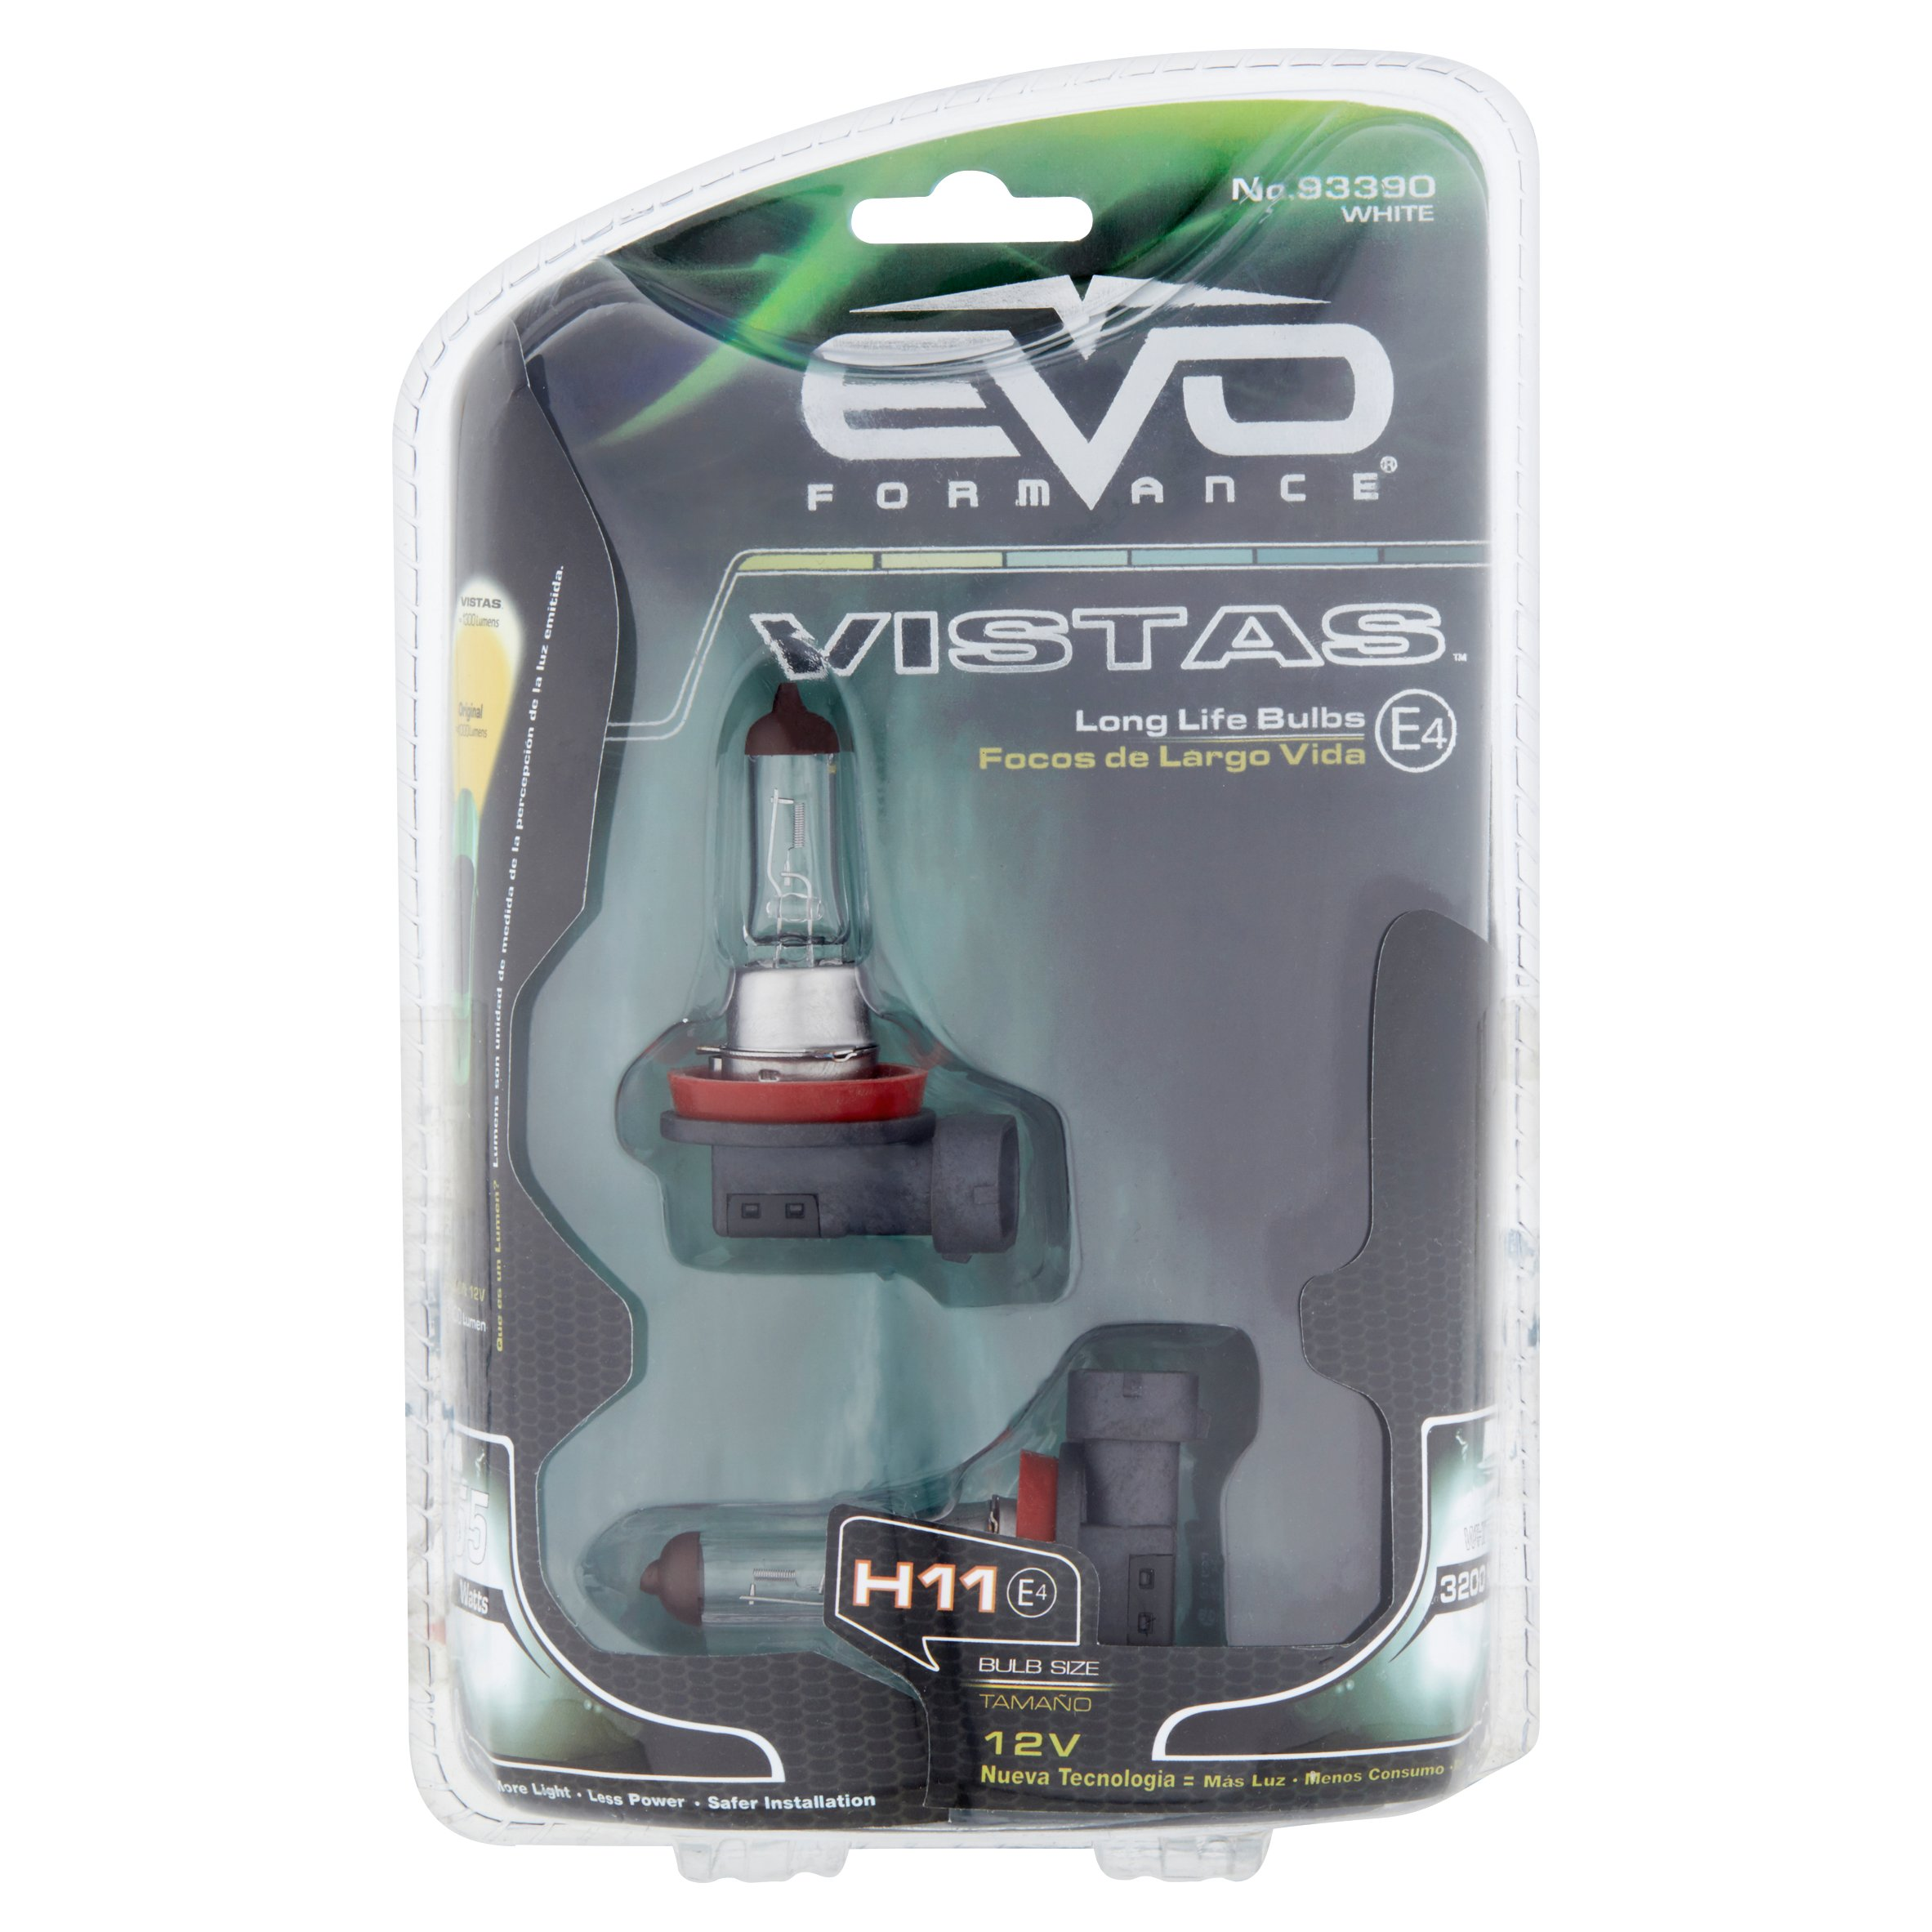 Evo Formance Vistas H11 E4 12 V Long Life White Bulbs